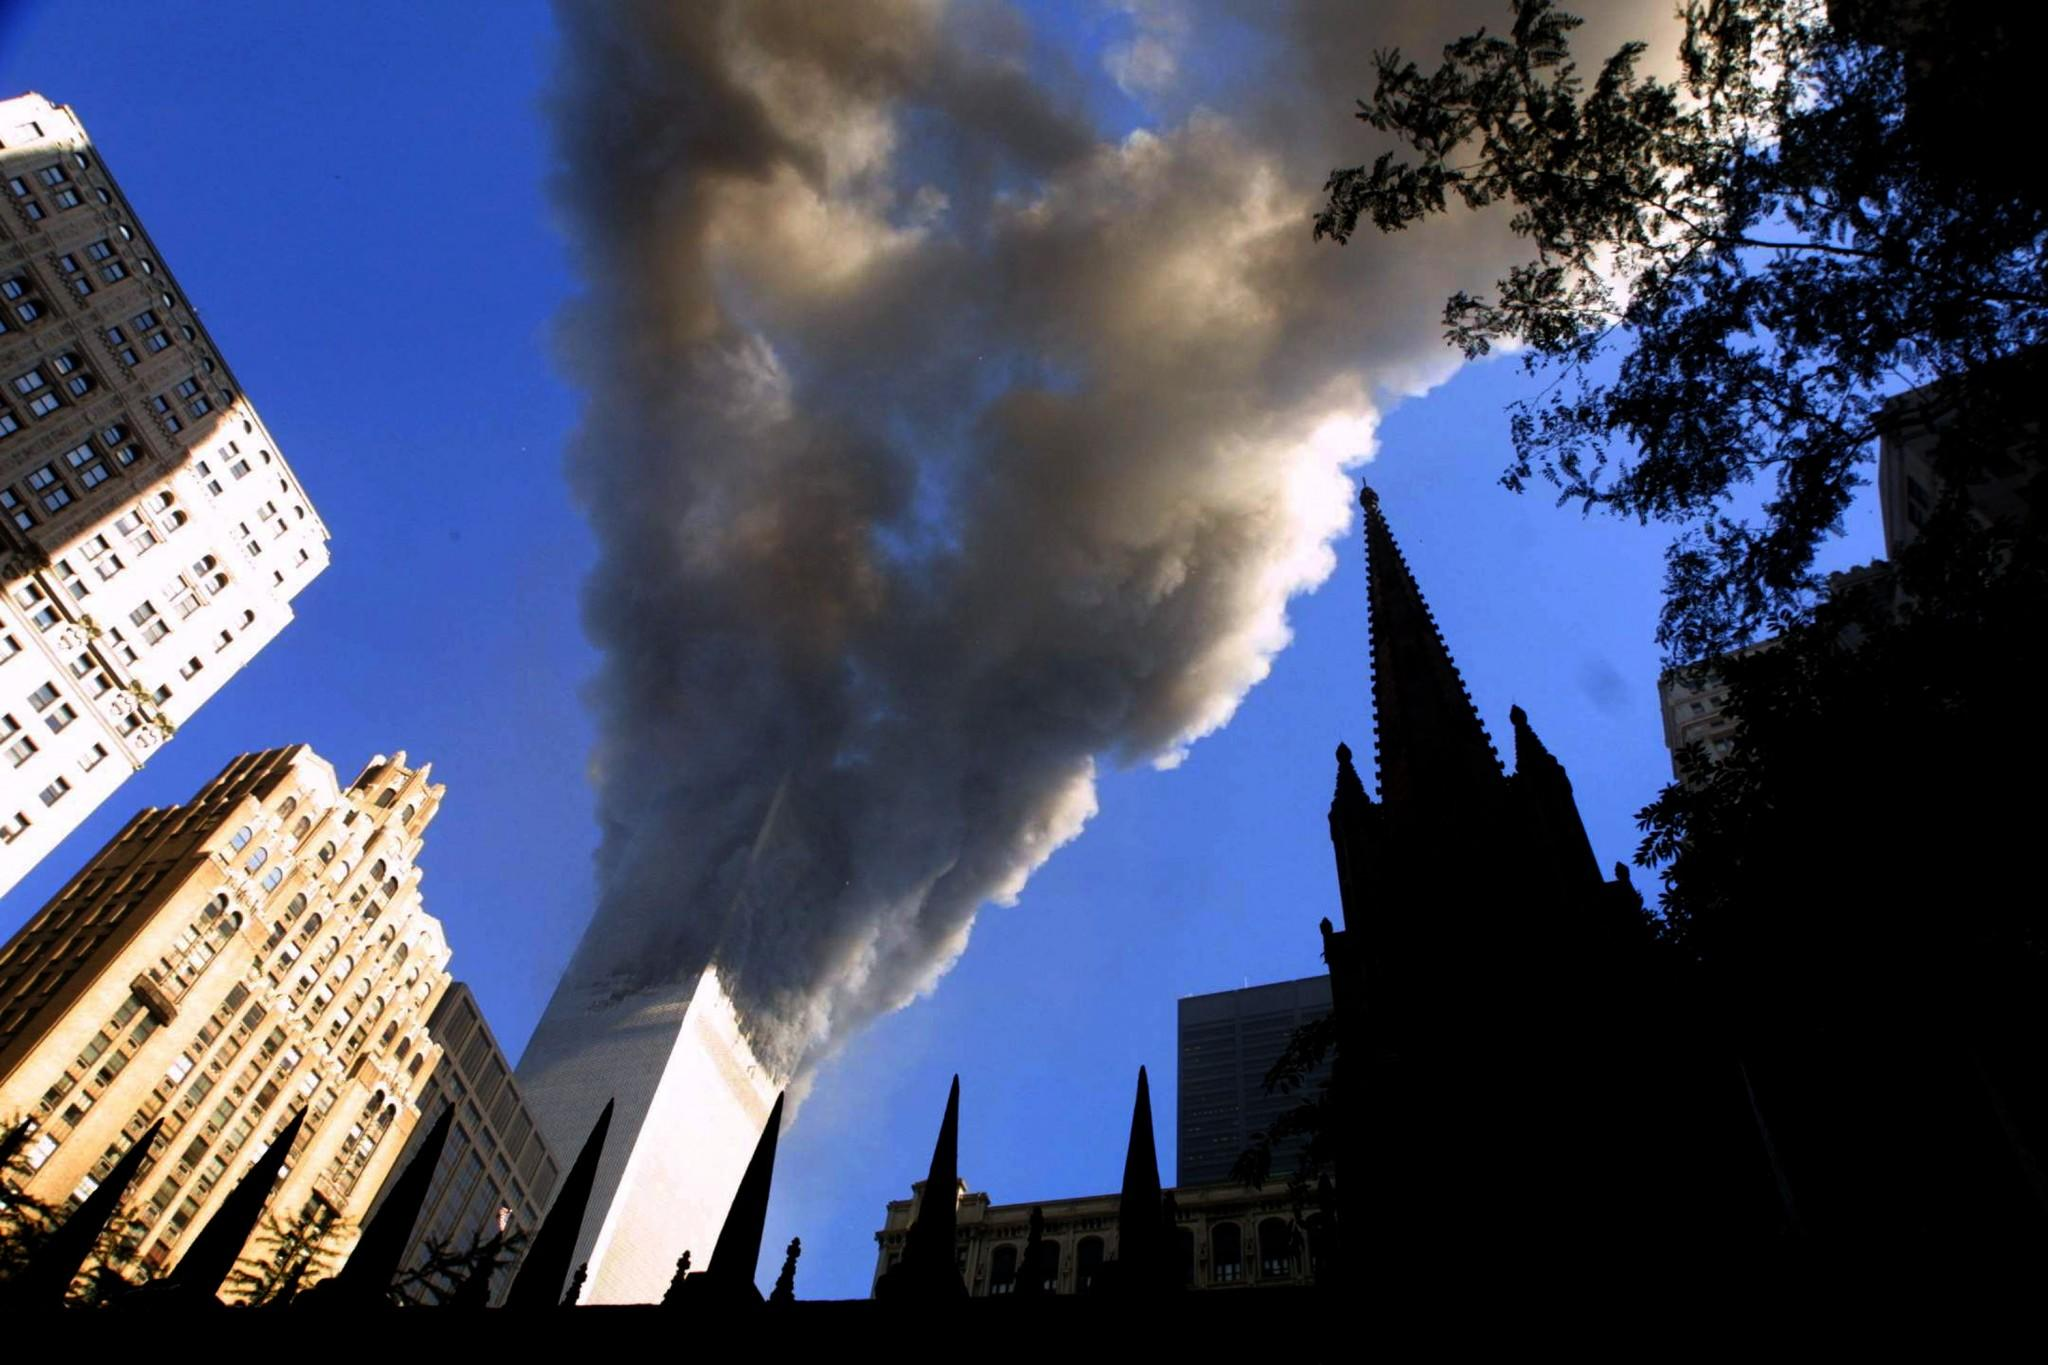 <p>Smoke spews from a tower of the World Trade Center Sept. 11, 2001, after two hijacked airplanes hit the twin towers in a terrorist attack on New York City. (Photo: Mario Tama/Getty Images) </p>